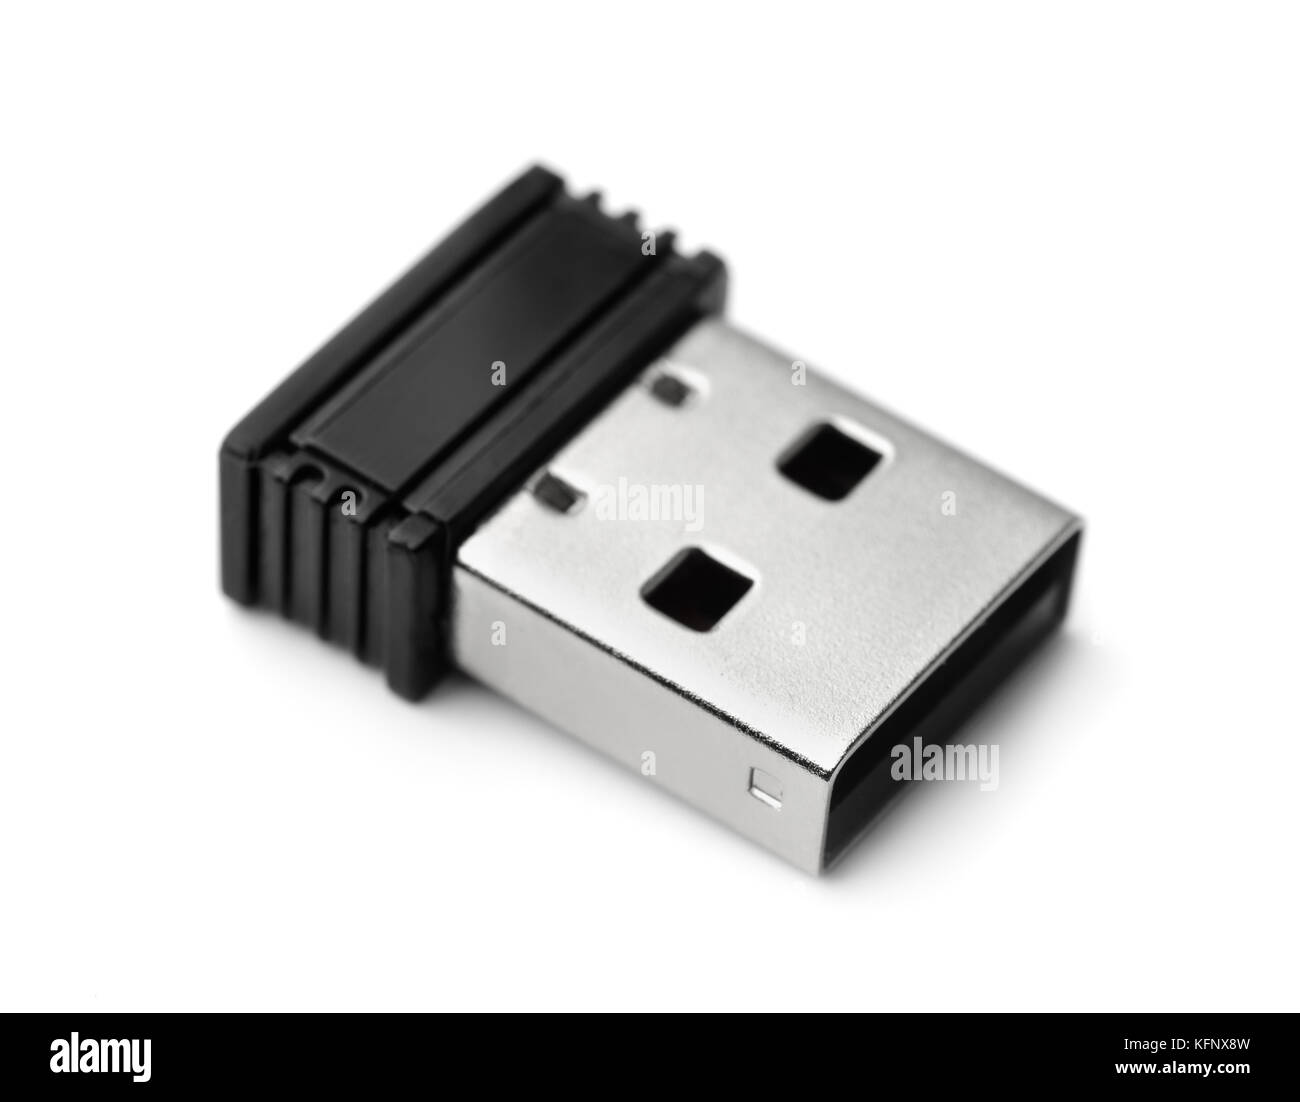 Mini dongle usb wifi isolated on white Photo Stock